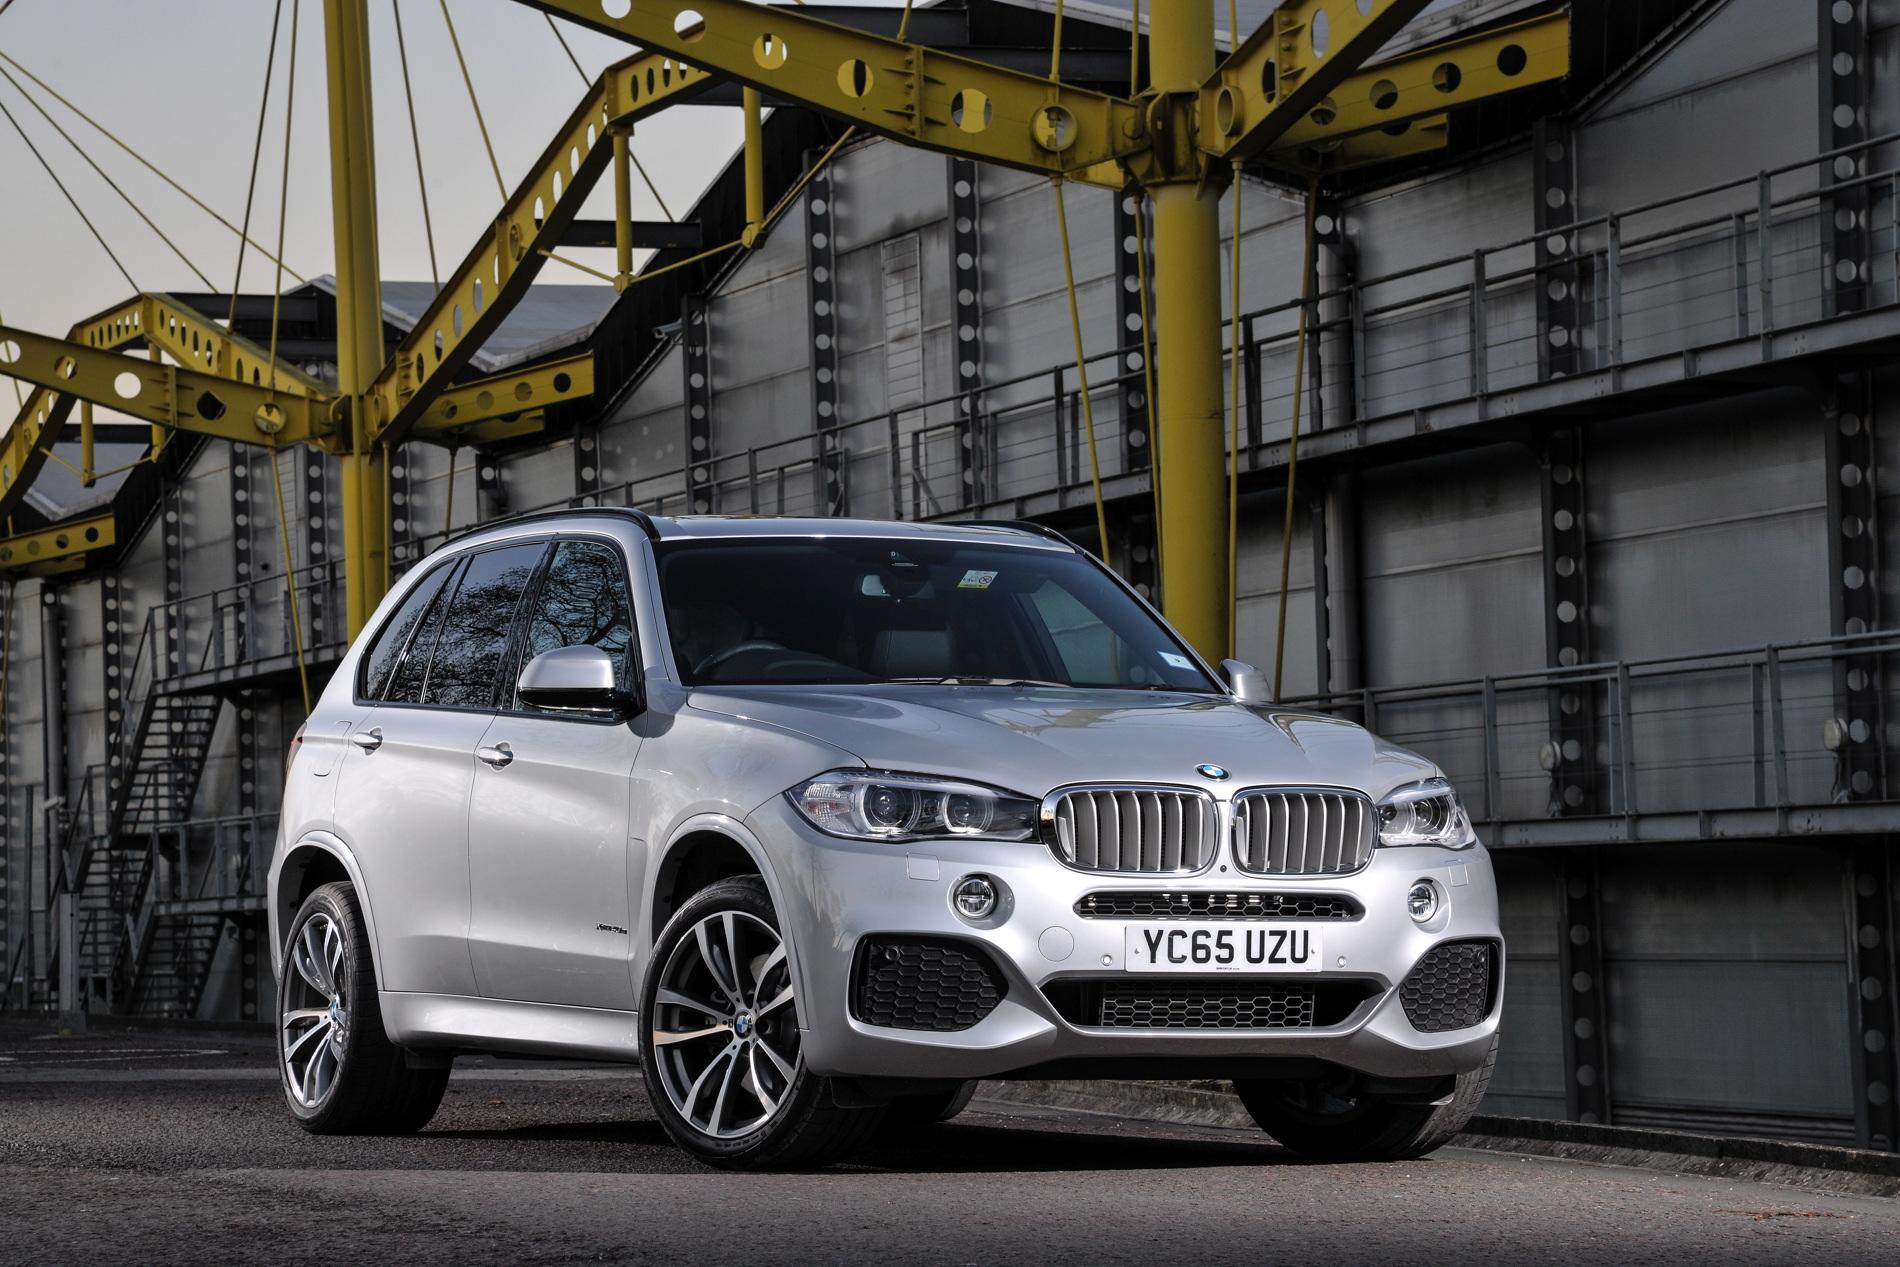 Rumor: BMW X3 plug-in hybrid halted, likely to be cancelled in favor ...